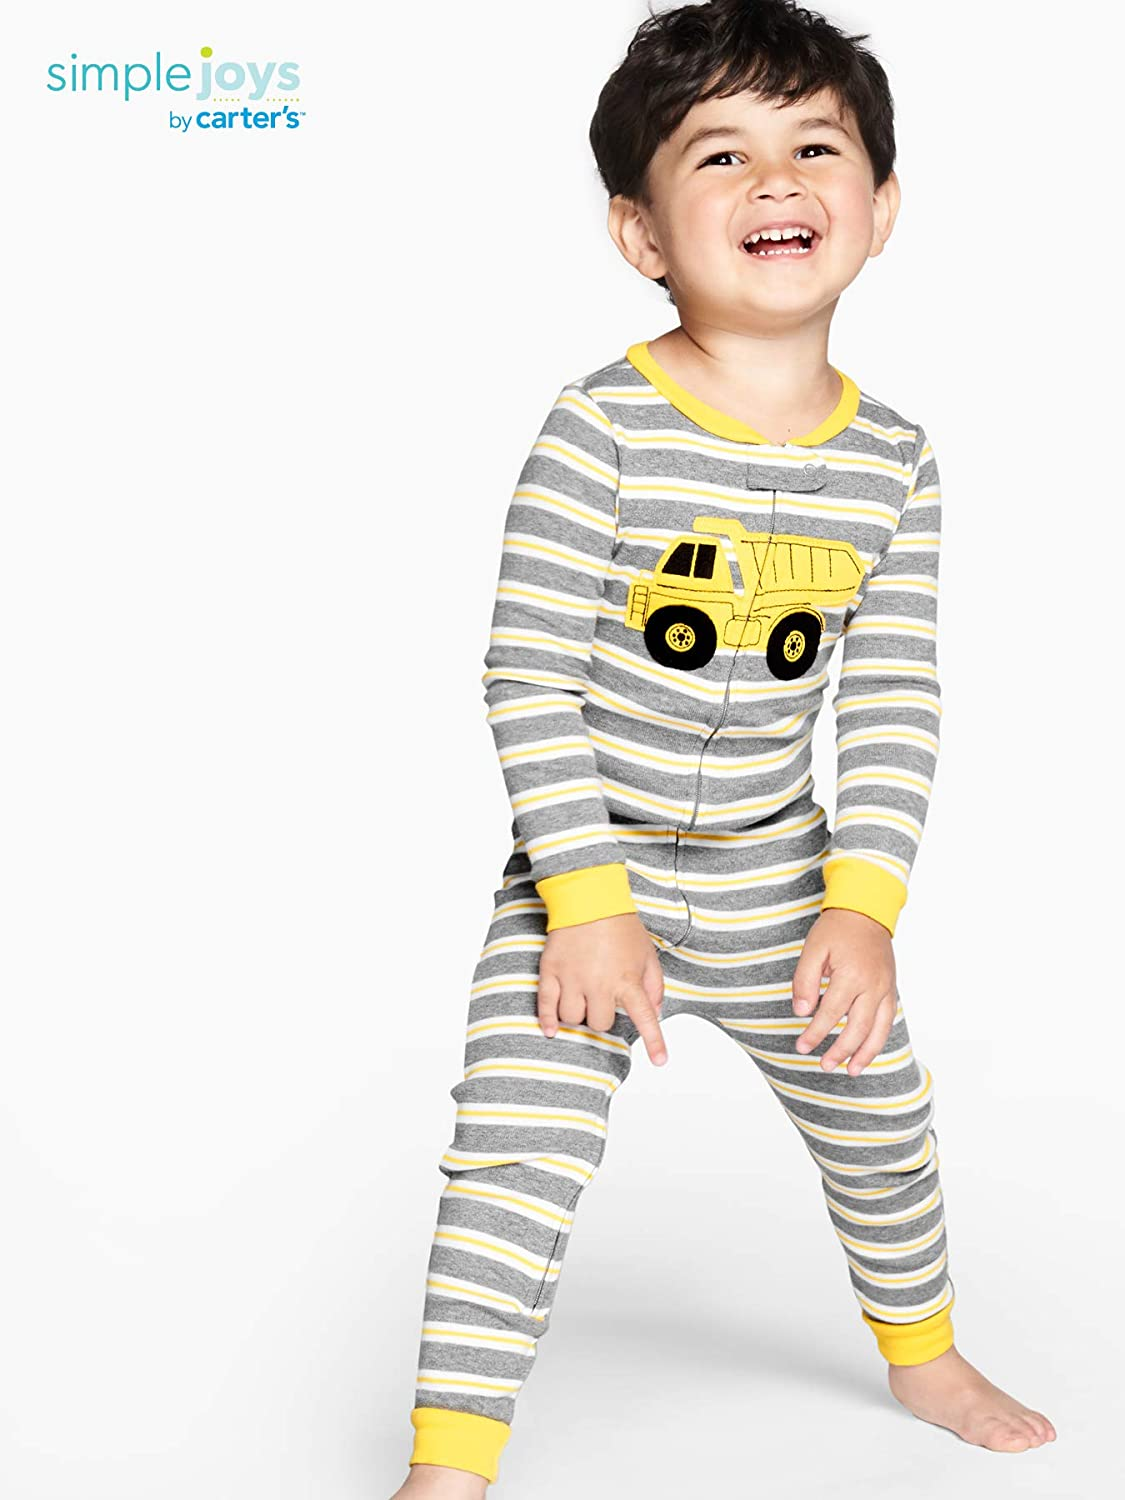 Simple Joys by Carter's Baby Boys' 3-Pack Snug Fit Footless Cotton Pajamas: Clothing